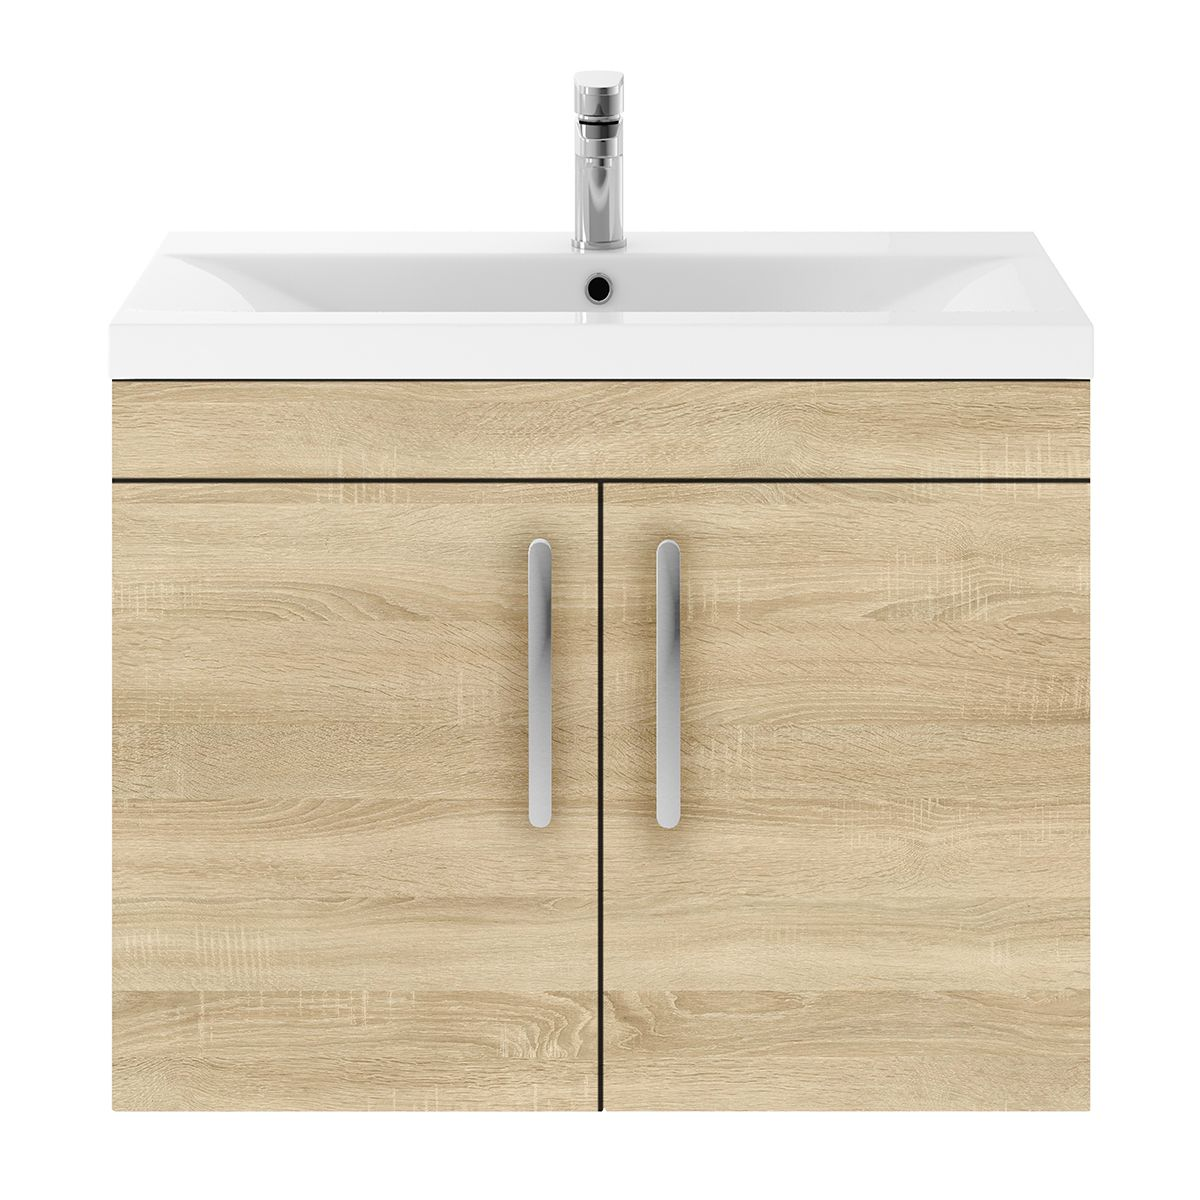 Nuie Athena Natural Oak 2 Door Wall Hung Unit 800mm with Mid Edge Basin